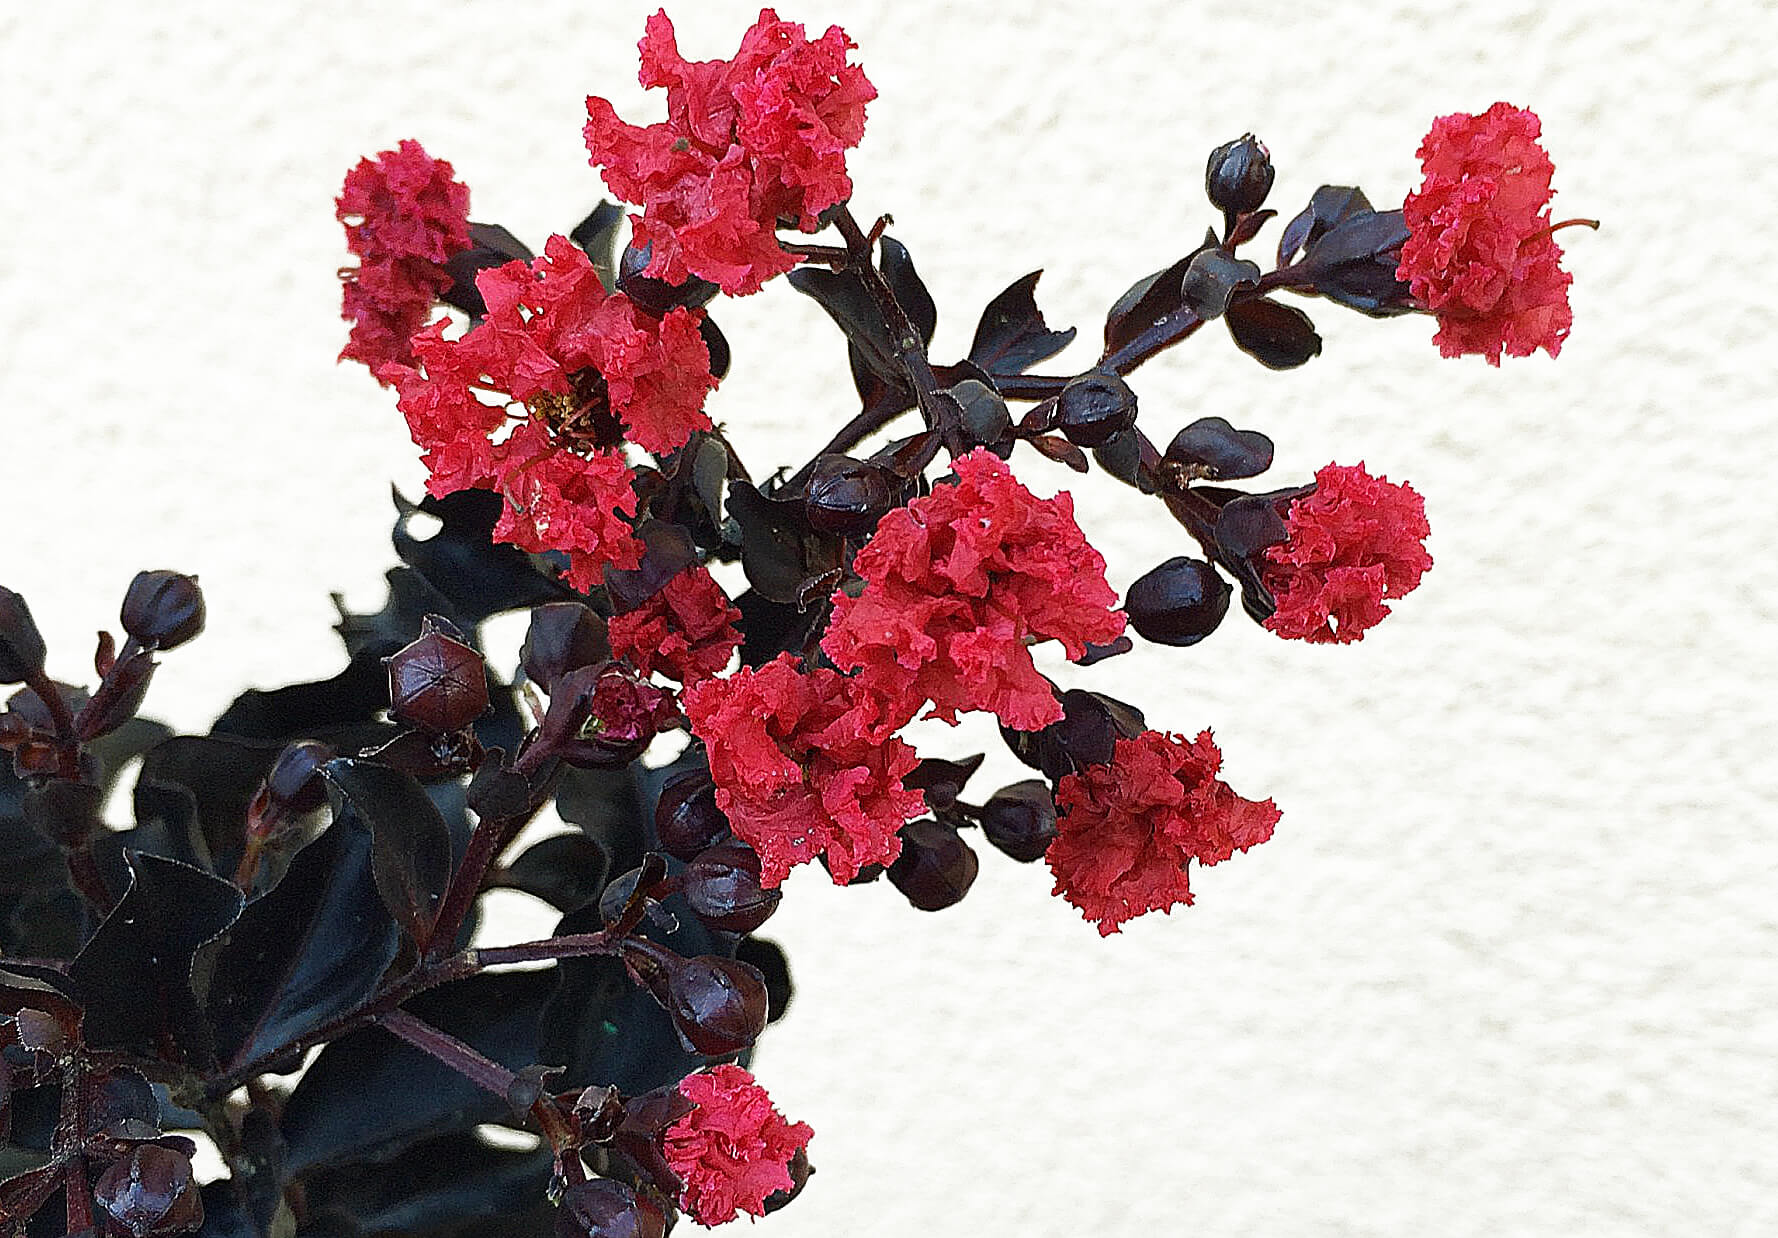 New Mexico Friendly Shrubs – Osuna Nursery on peppers red, animals red, ornamental grasses red, orchids red, berries red, cactus red, pots red, design red, nature red, mums red, flowers red,